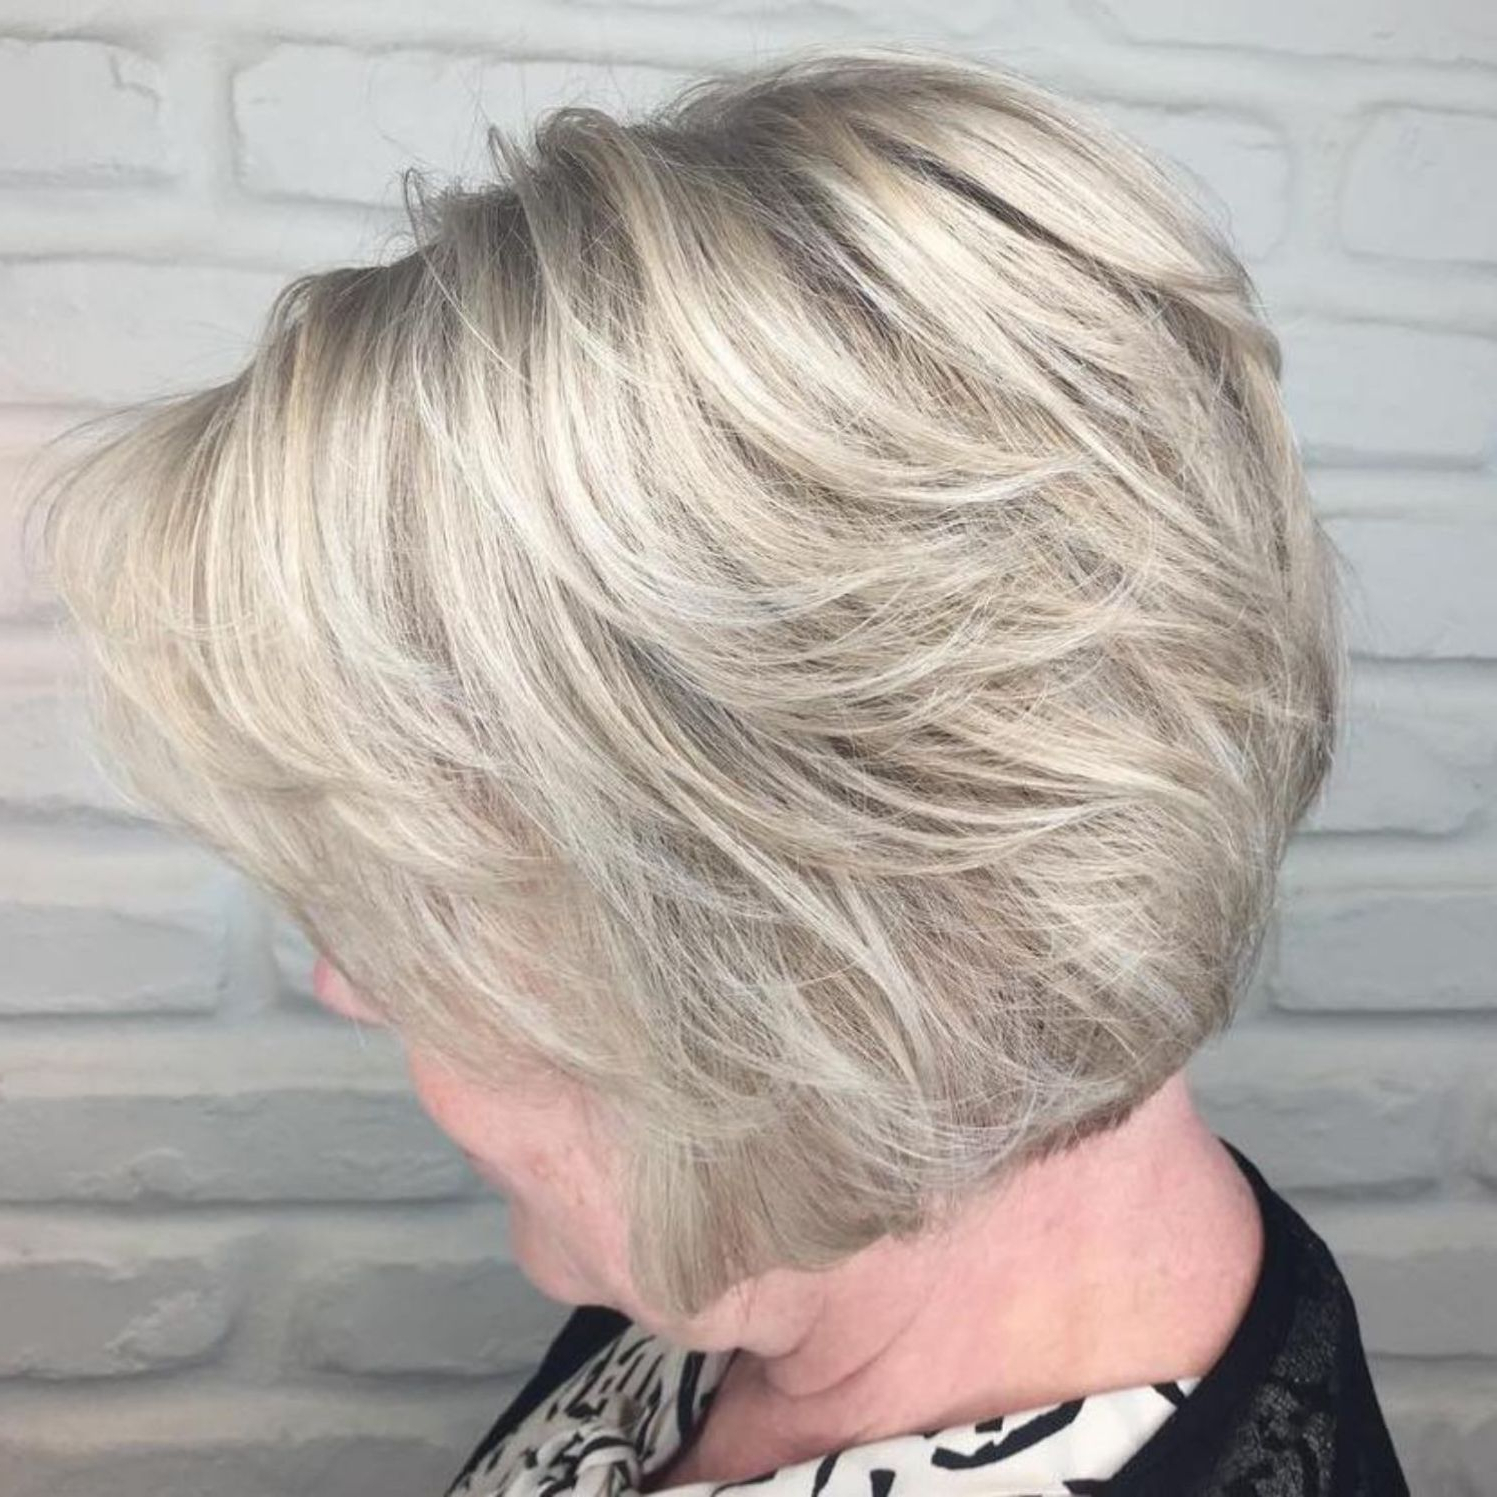 60 Best Hairstyles And Haircuts For Women Over 60 To Suit Any Taste Within Pixie Bob Hairstyles With Golden Blonde Feathers (View 10 of 20)